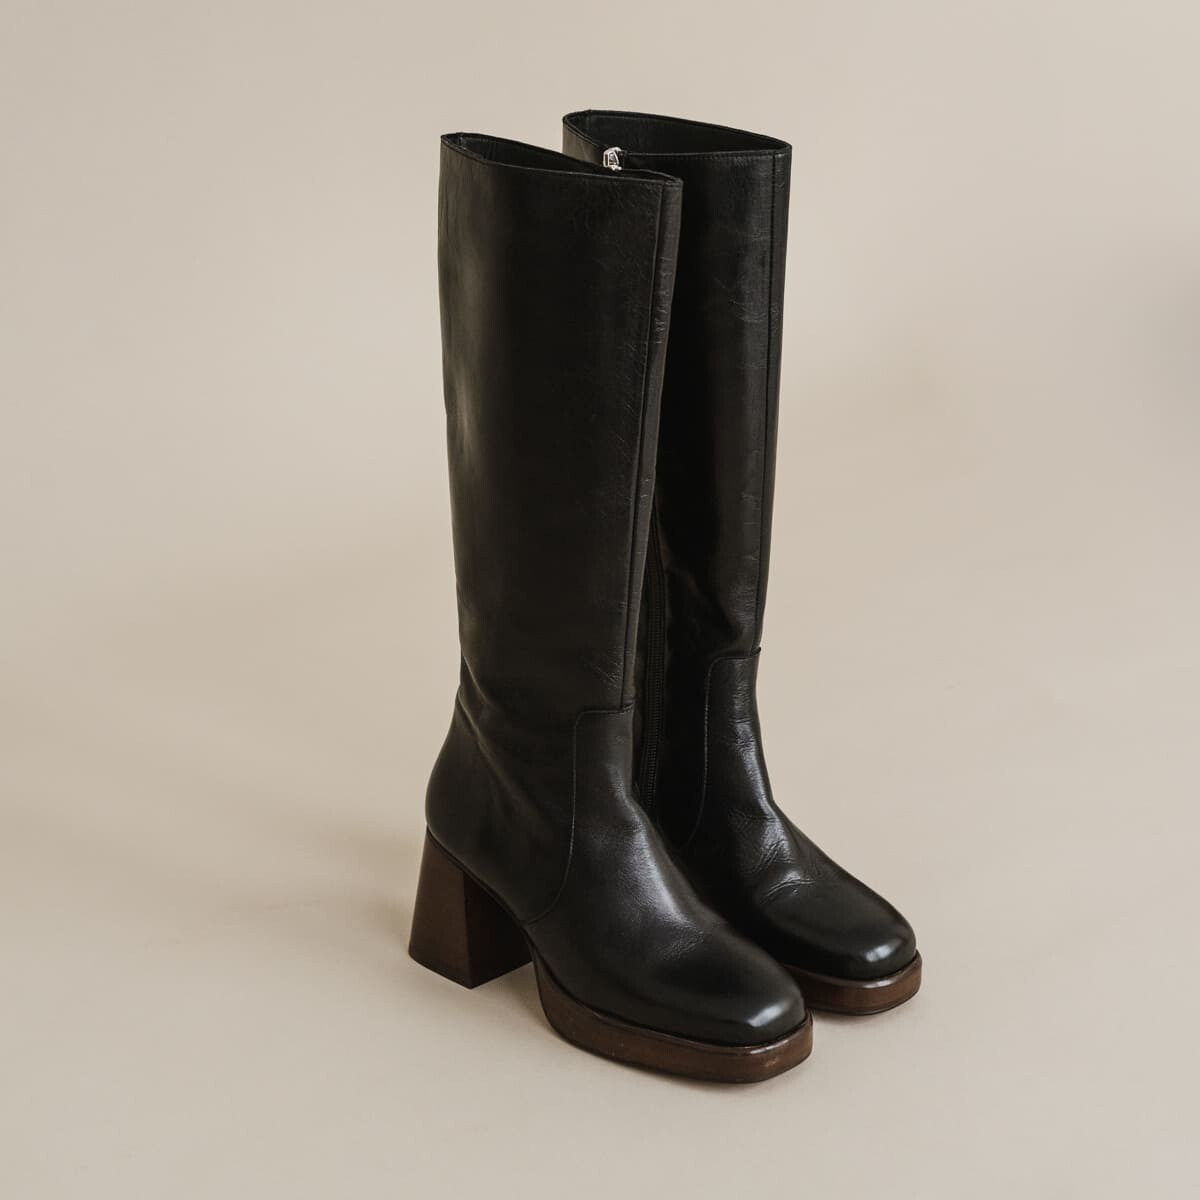 Platform boots in aged black leather